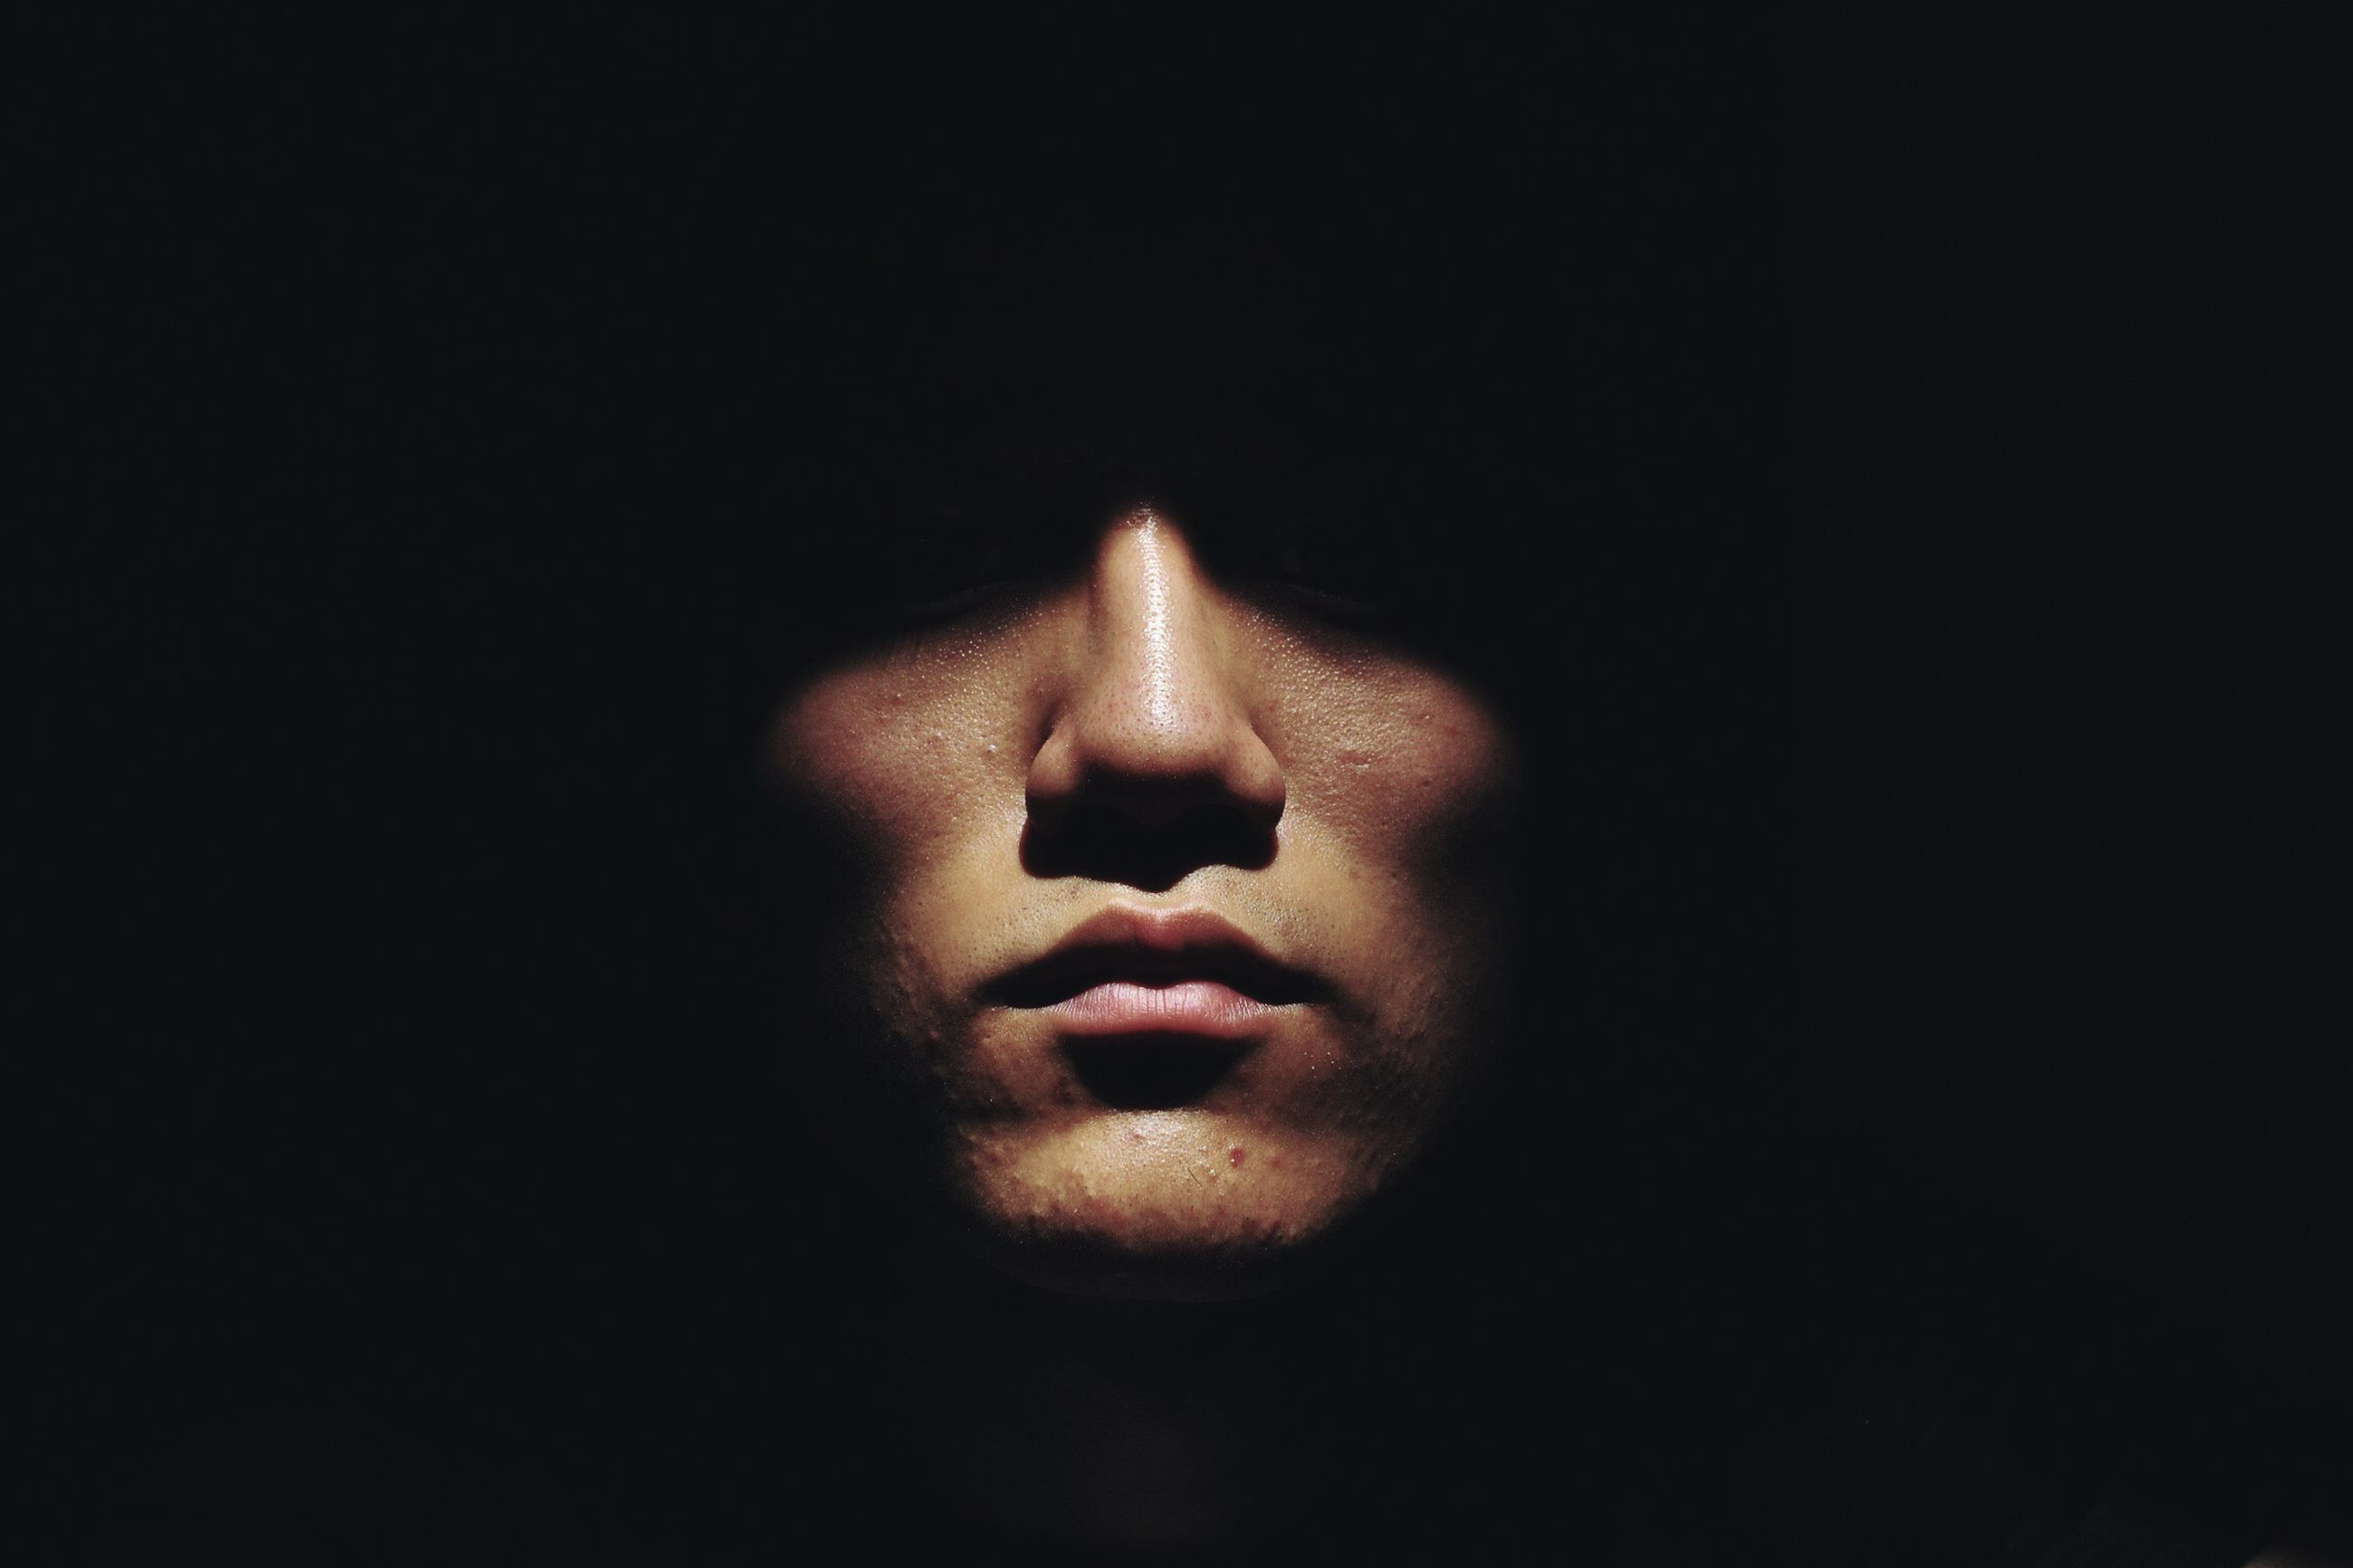 studio shot, black background, copy space, person, close-up, indoors, part of, red, dark, cut out, holding, darkroom, single object, night, burning, human finger